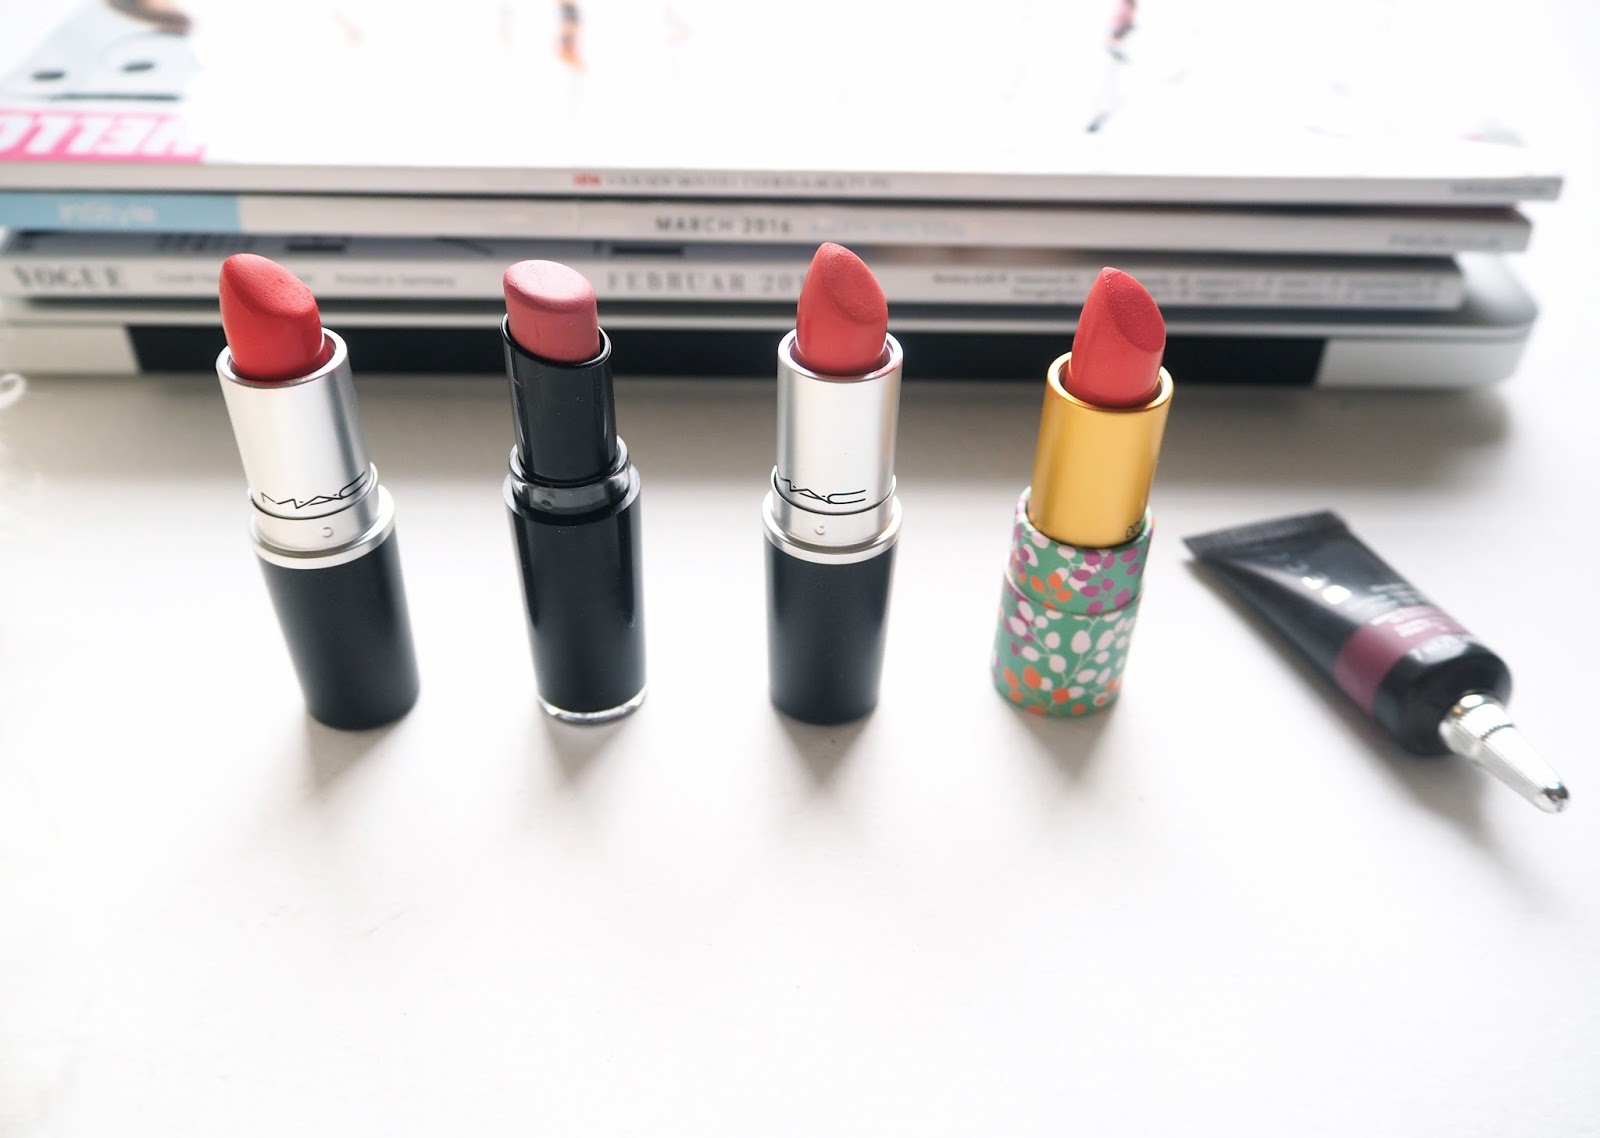 Five Lip Shades for Spring, spring lipsticks, mac lady danger, tropic tonic, wet n wild, megalast lip color, rose bud, tarte amazonian lipstick, coral blossom, becca beach tint, raspberry, review, swatches